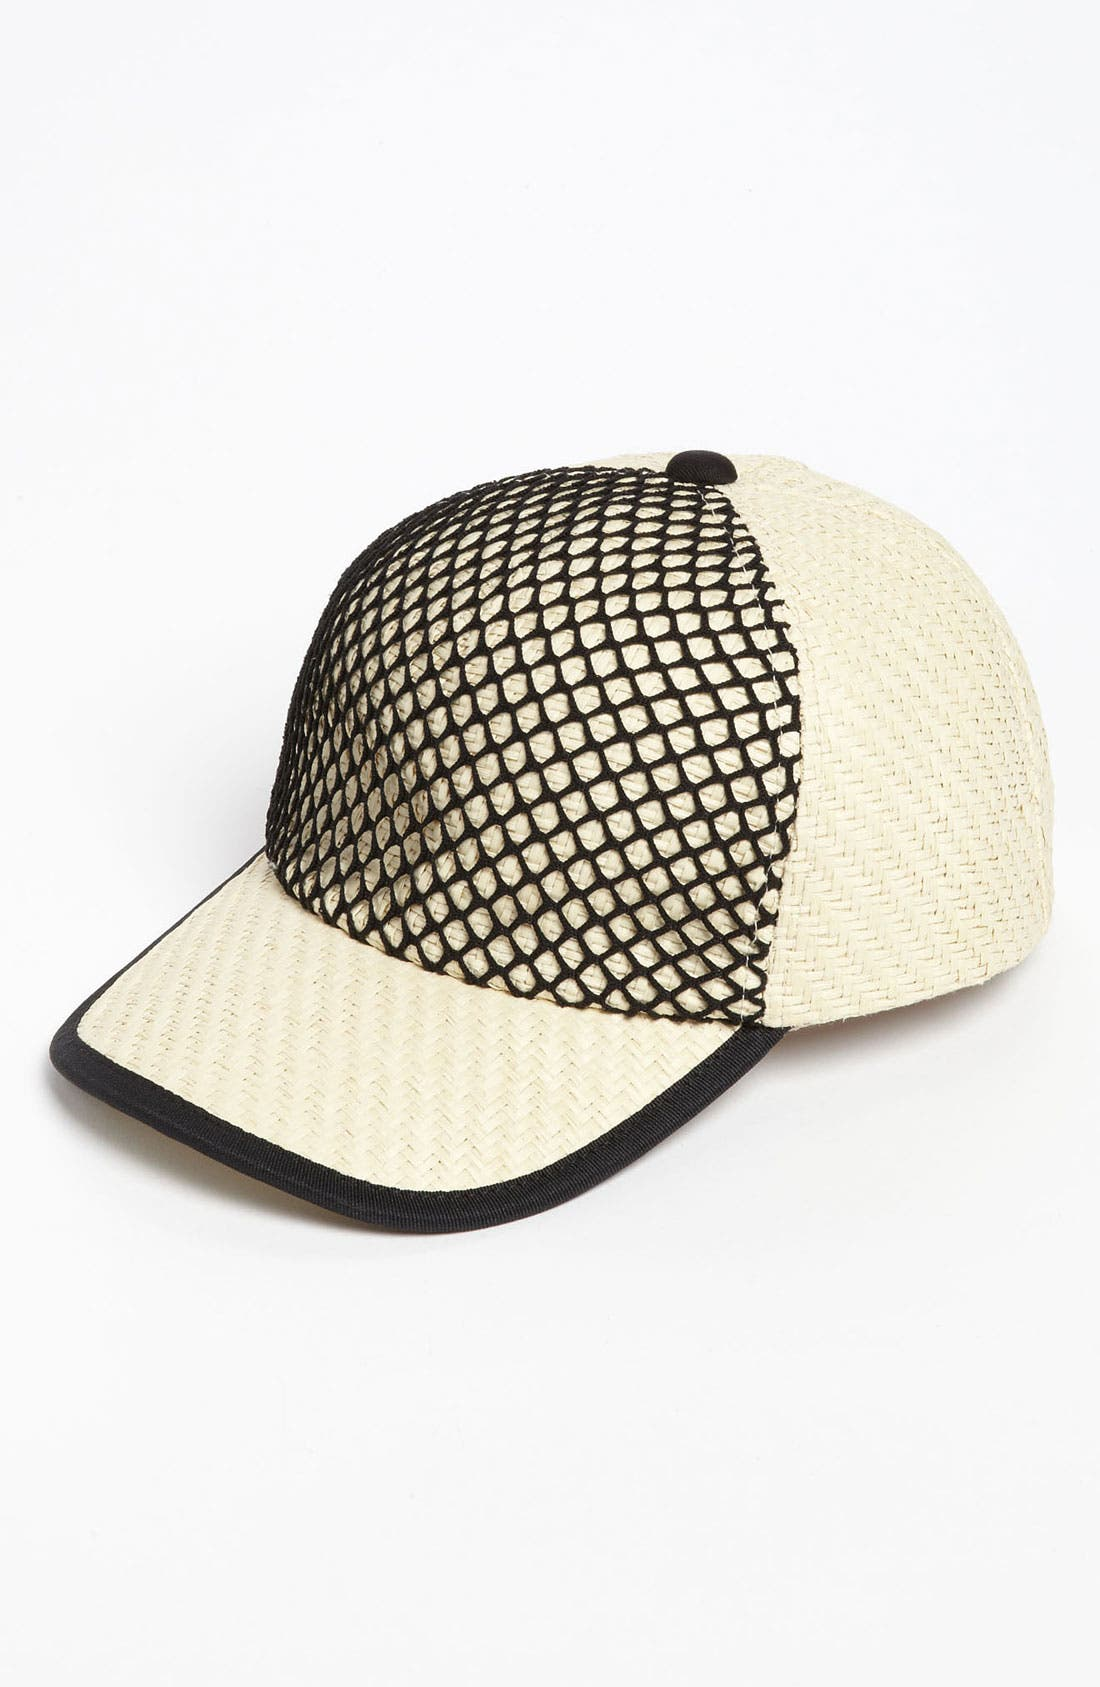 Alternate Image 1 Selected - Collection XIIX Netted Cap